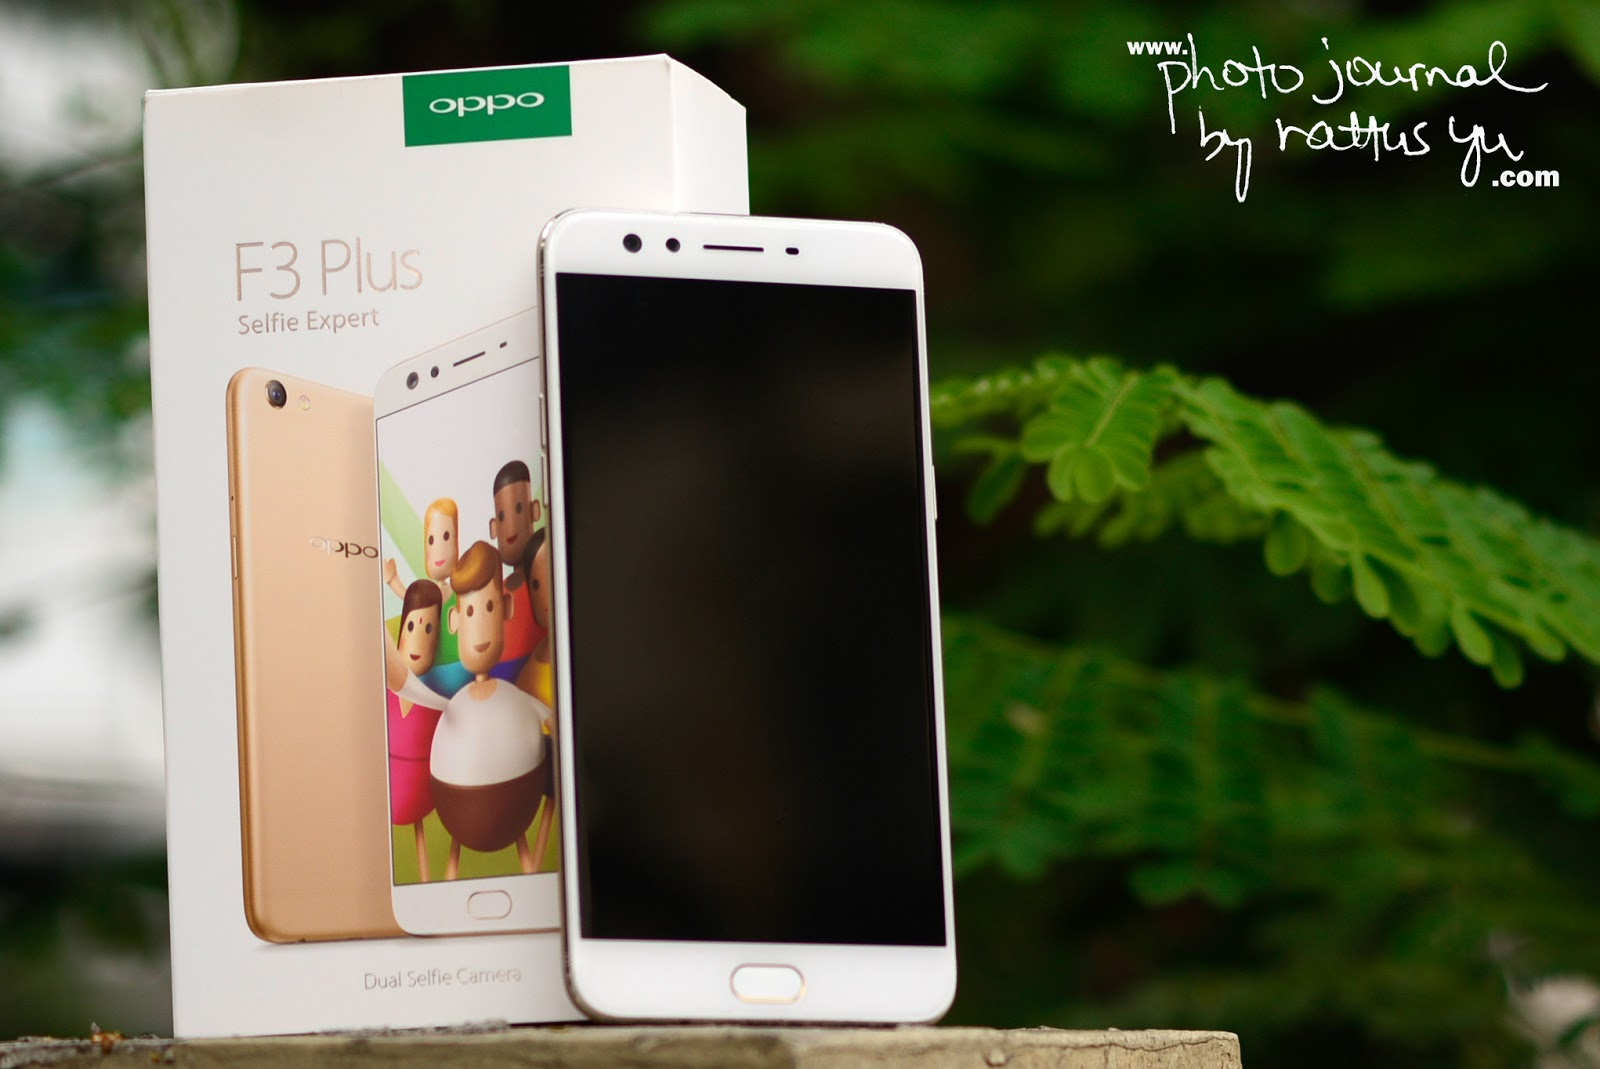 UNBOXING: OPPO F3 Plus, The 'Selfie Expert'